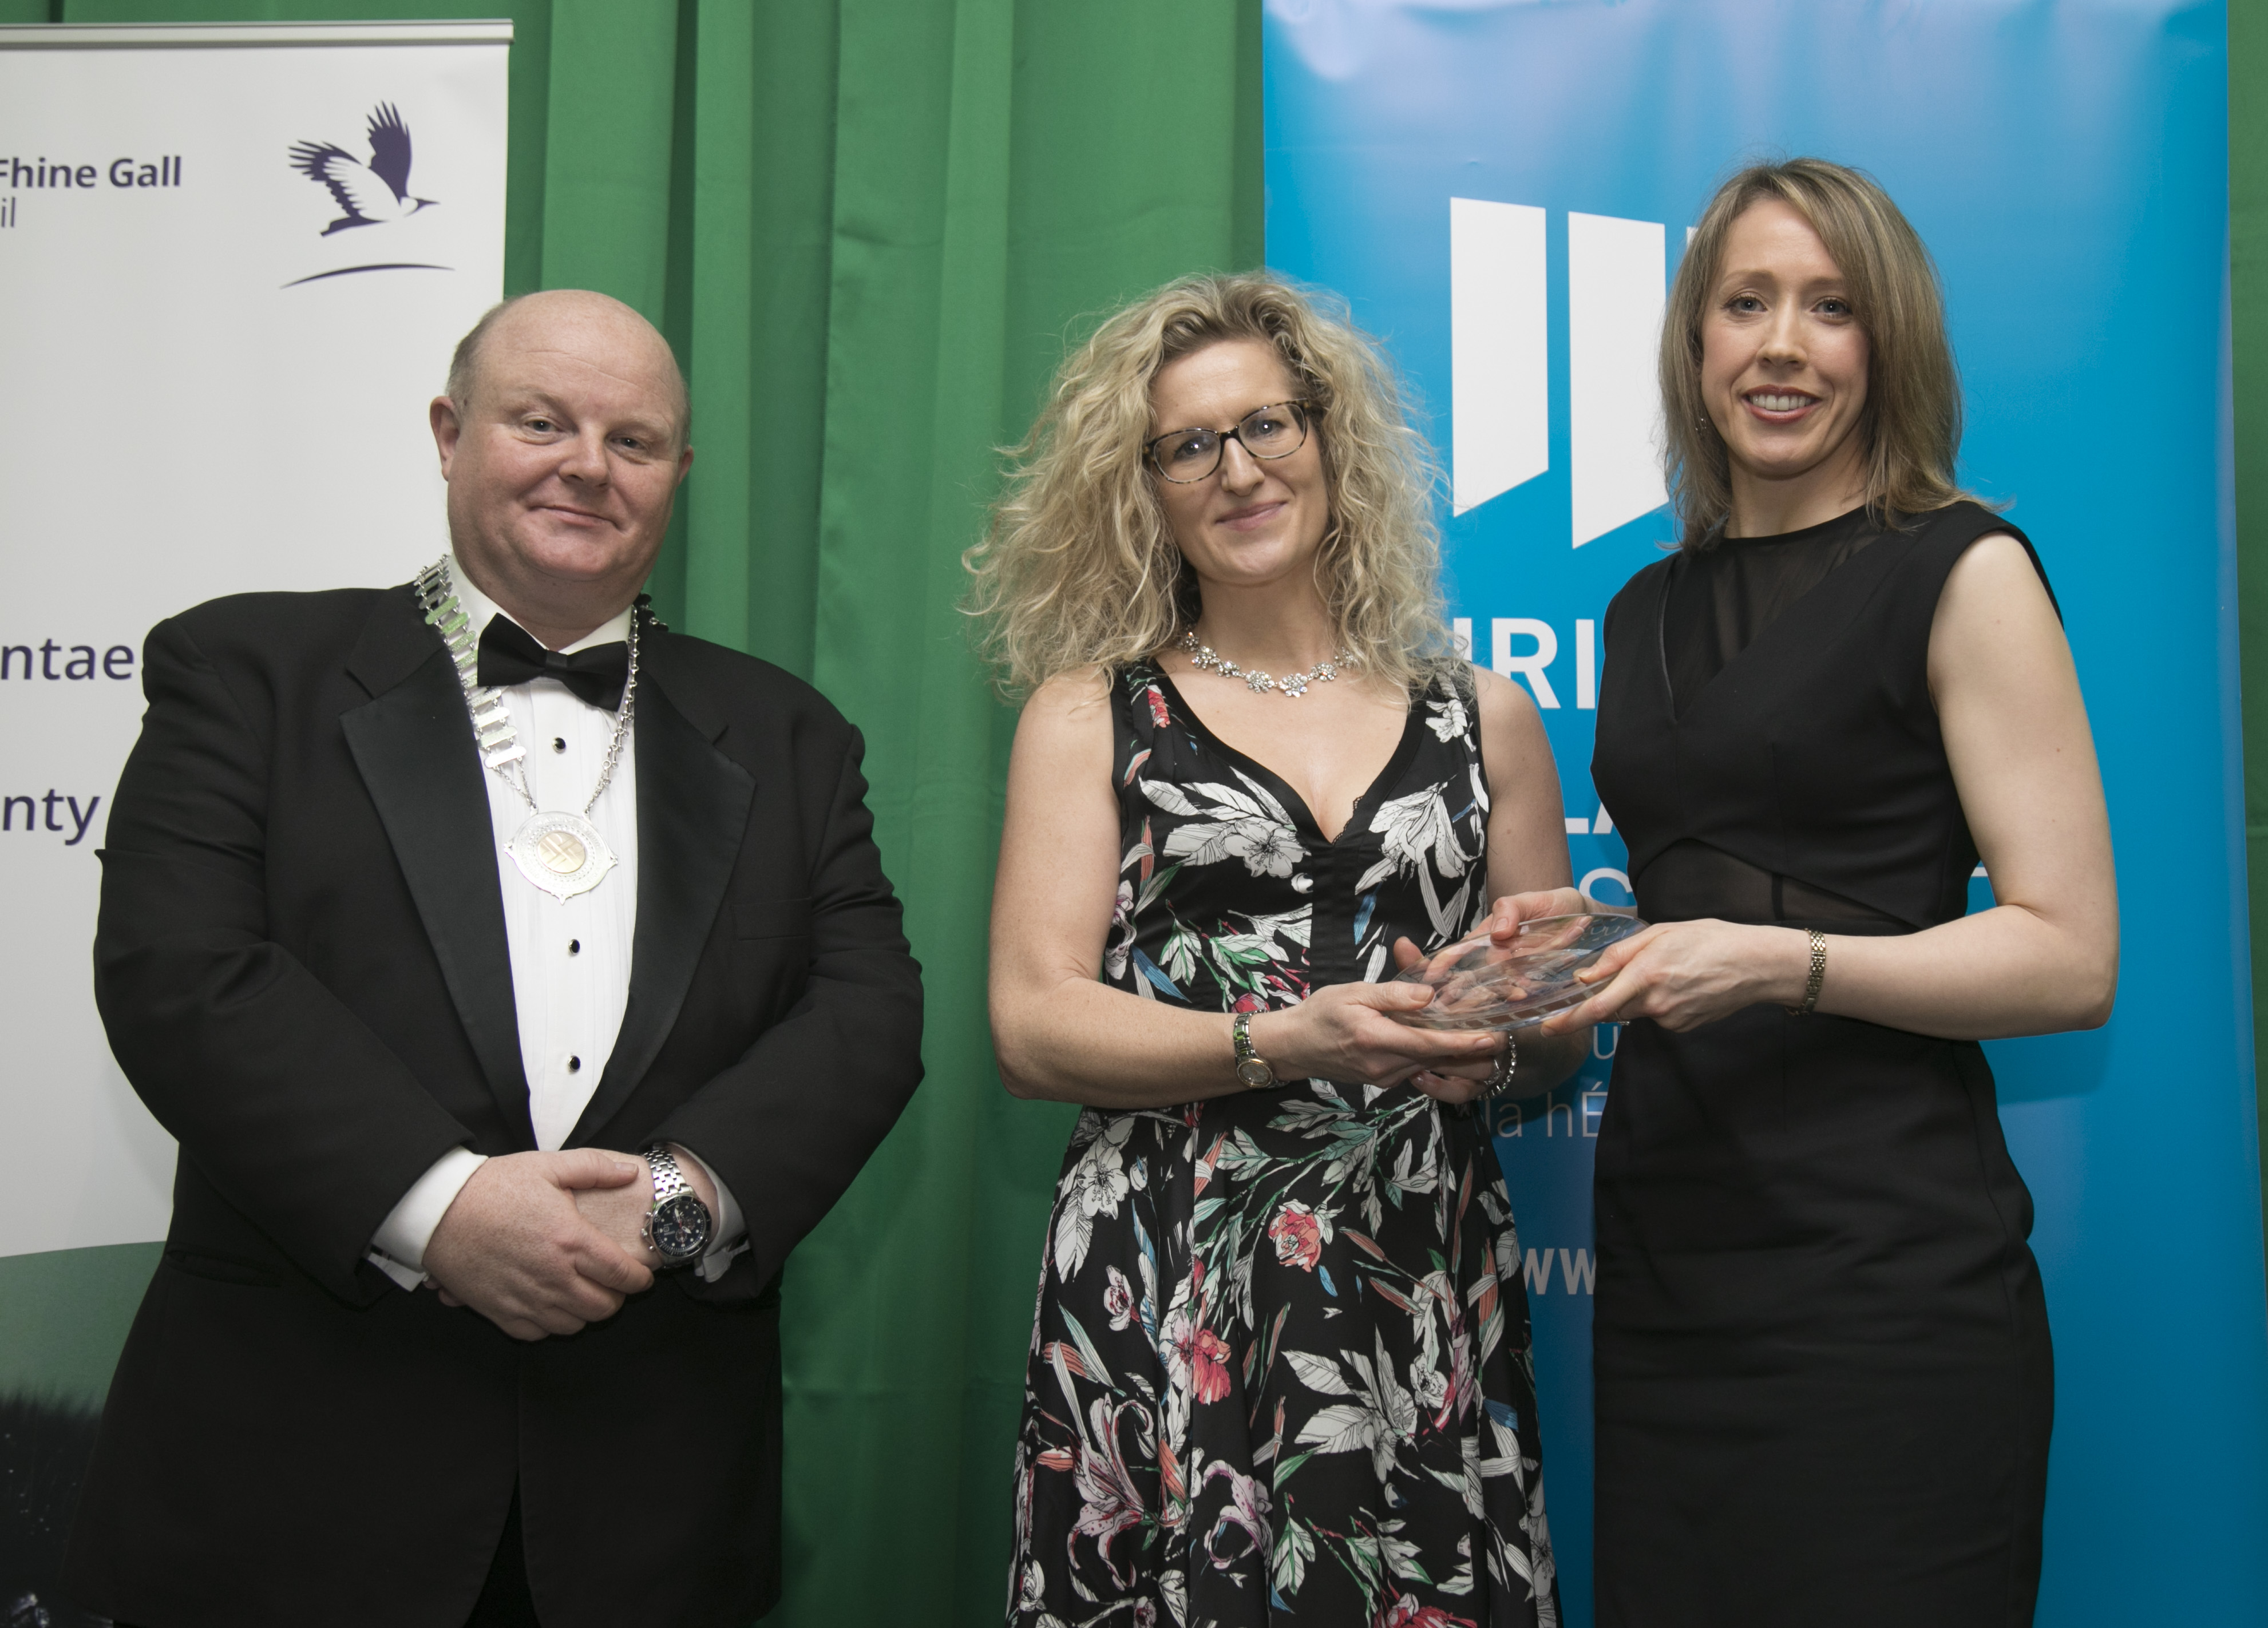 Clare Lee, Planning Section, receiving 'President's Award' award from outgoing Irish Planning Institute President, Deidre Fallon, with new President Joe Corr.